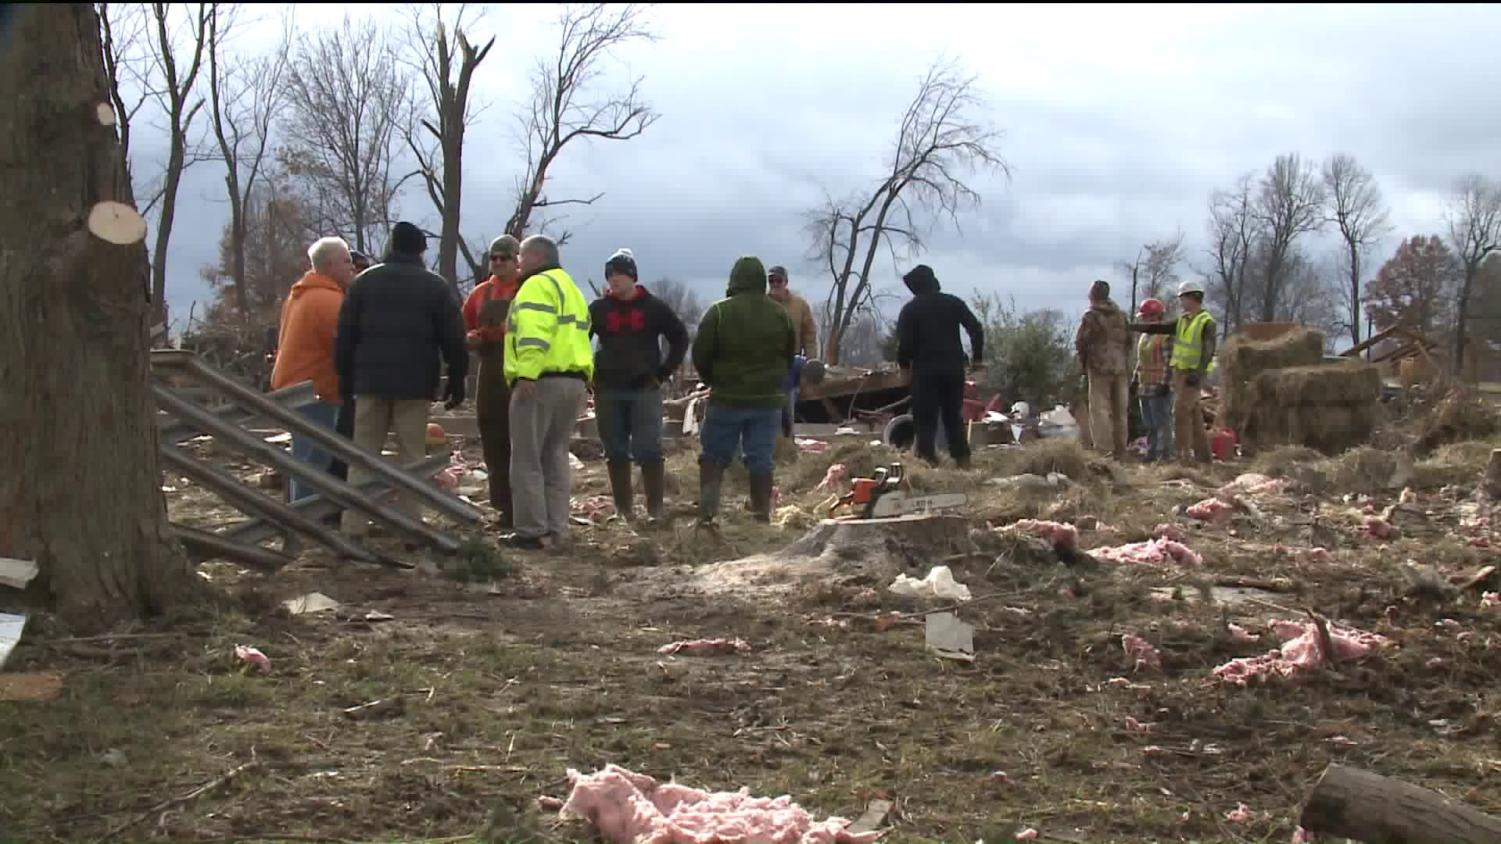 Residents survey the extensive damage done to homes in Taylorville (Tribune News Service).